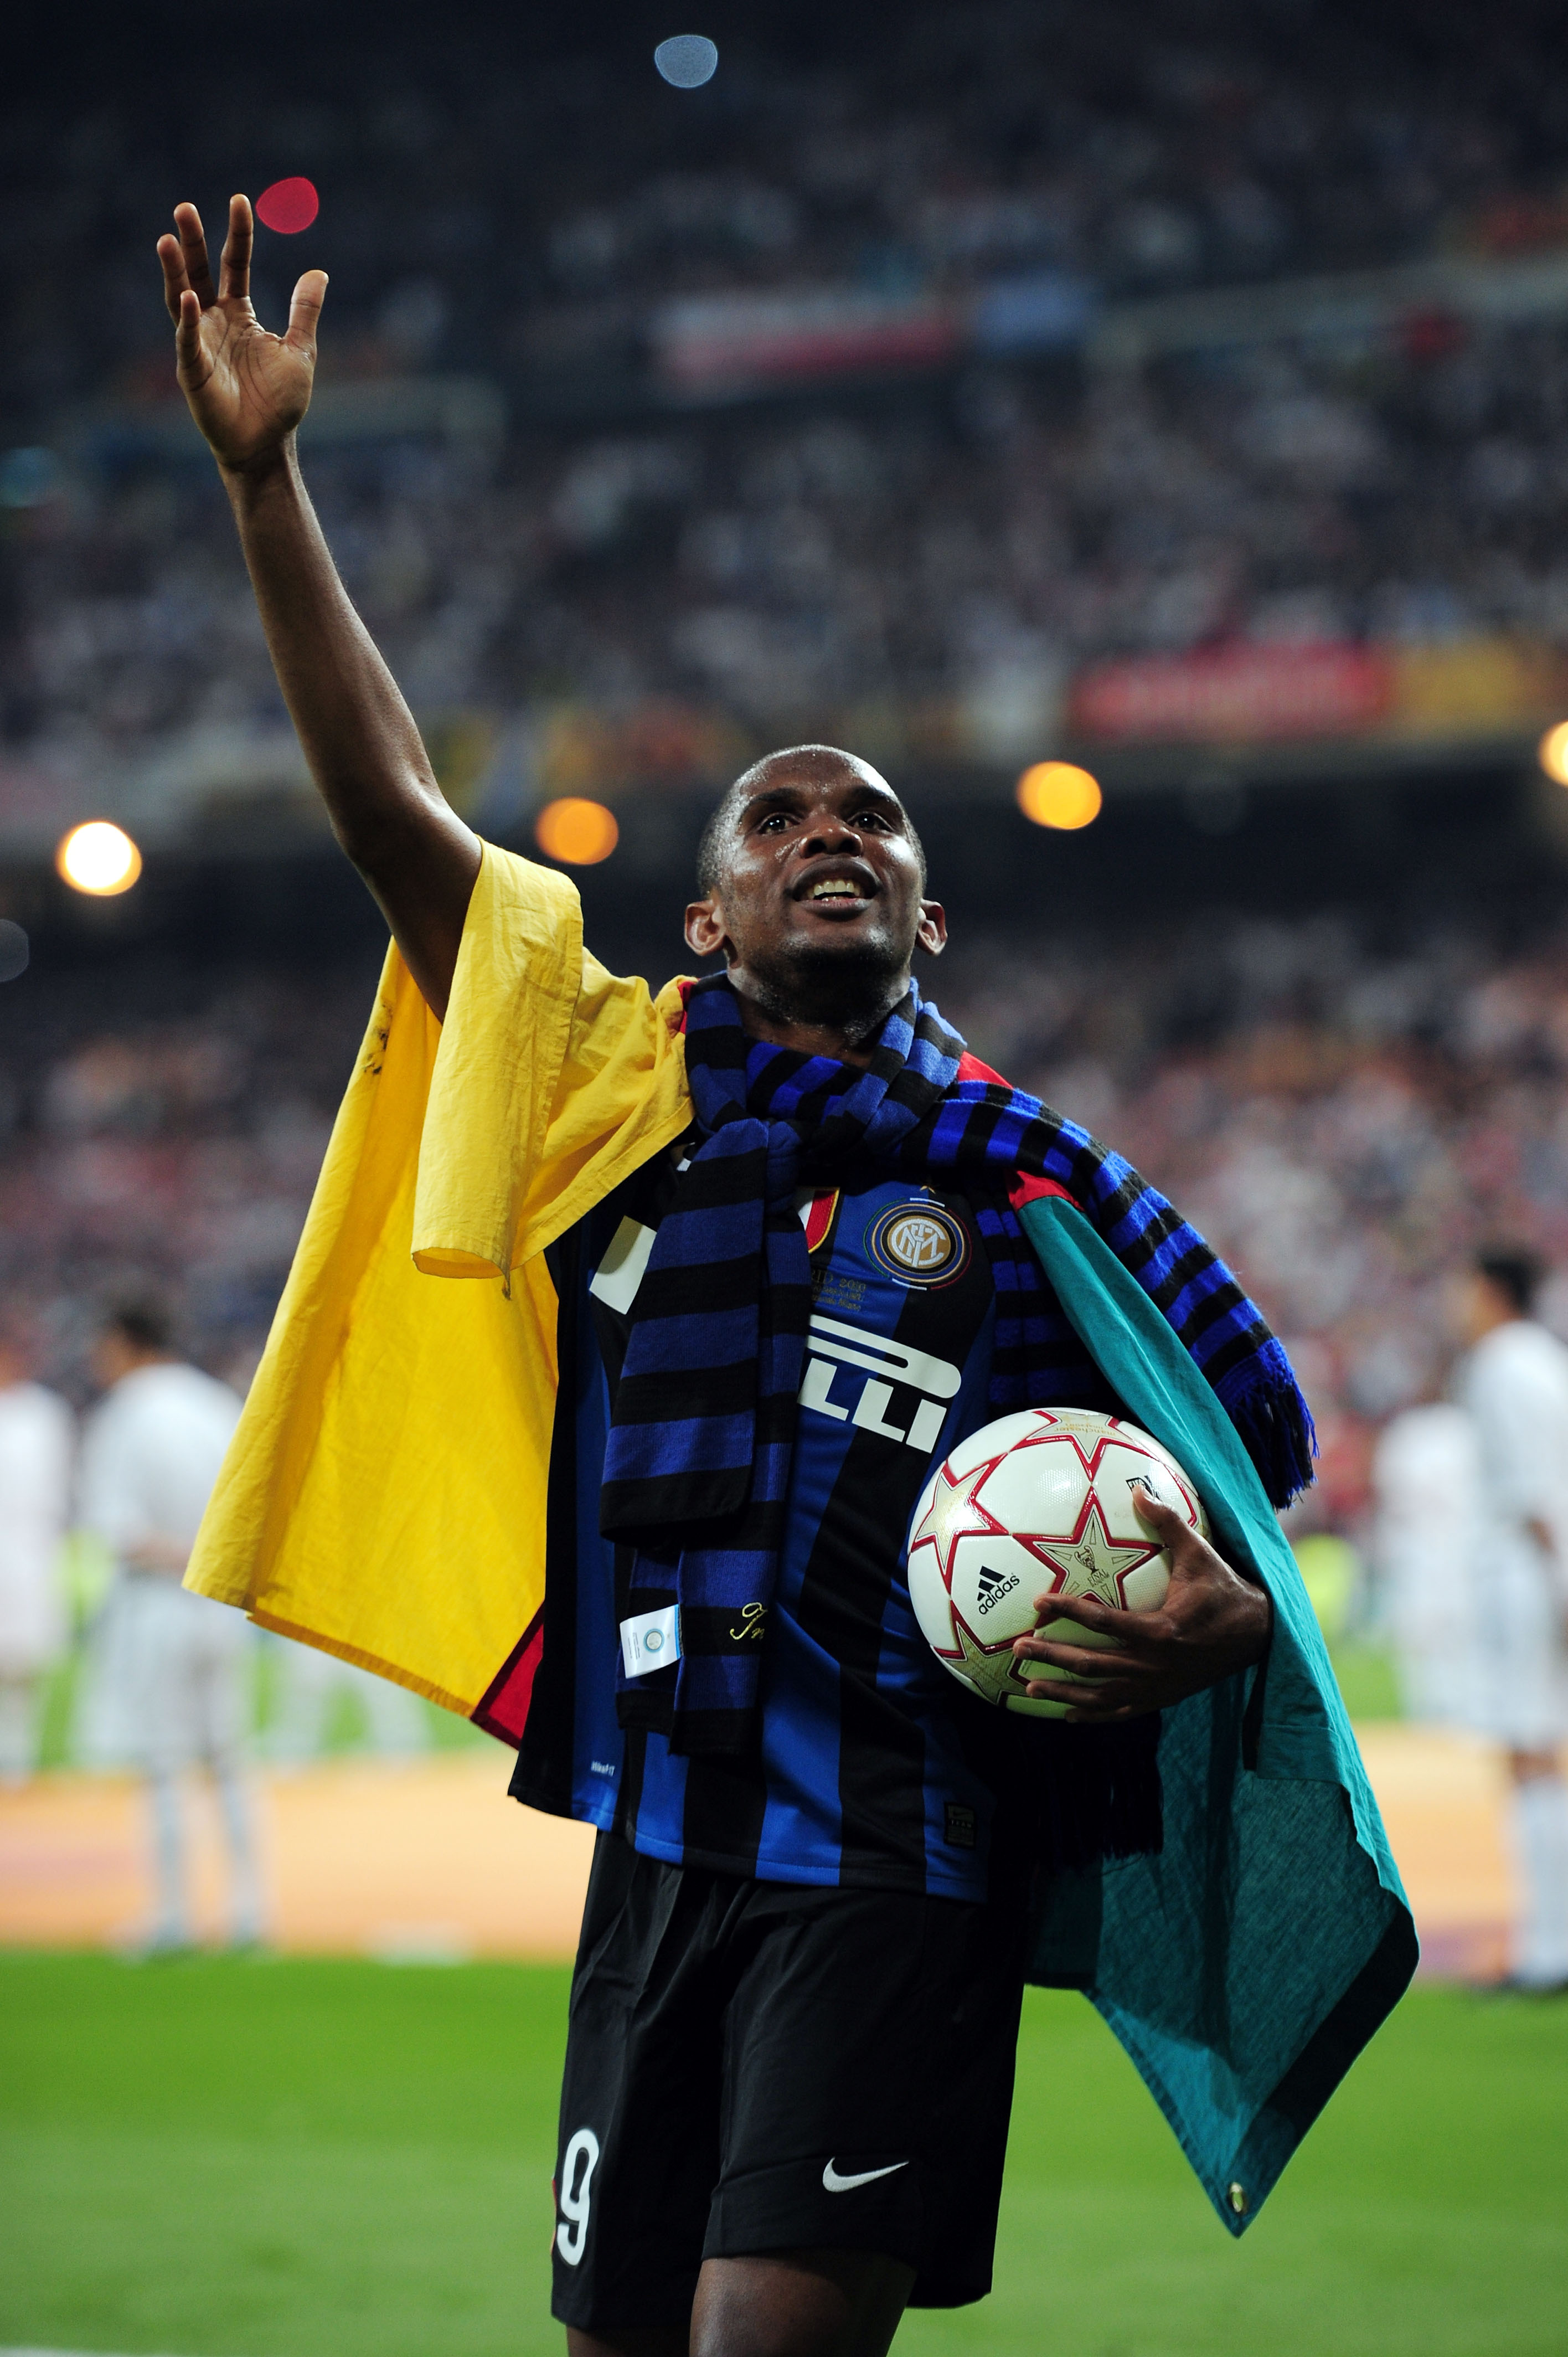 MADRID, SPAIN - MAY 22: Samuel Eto'o of Inter Milan celebrates his team's victory at the end of the UEFA Champions League Final match between FC Bayern Muenchen and Inter Milan at the Estadio Santiago Bernabeu on May 22, 2010 in Madrid, Spain.  (Photo by